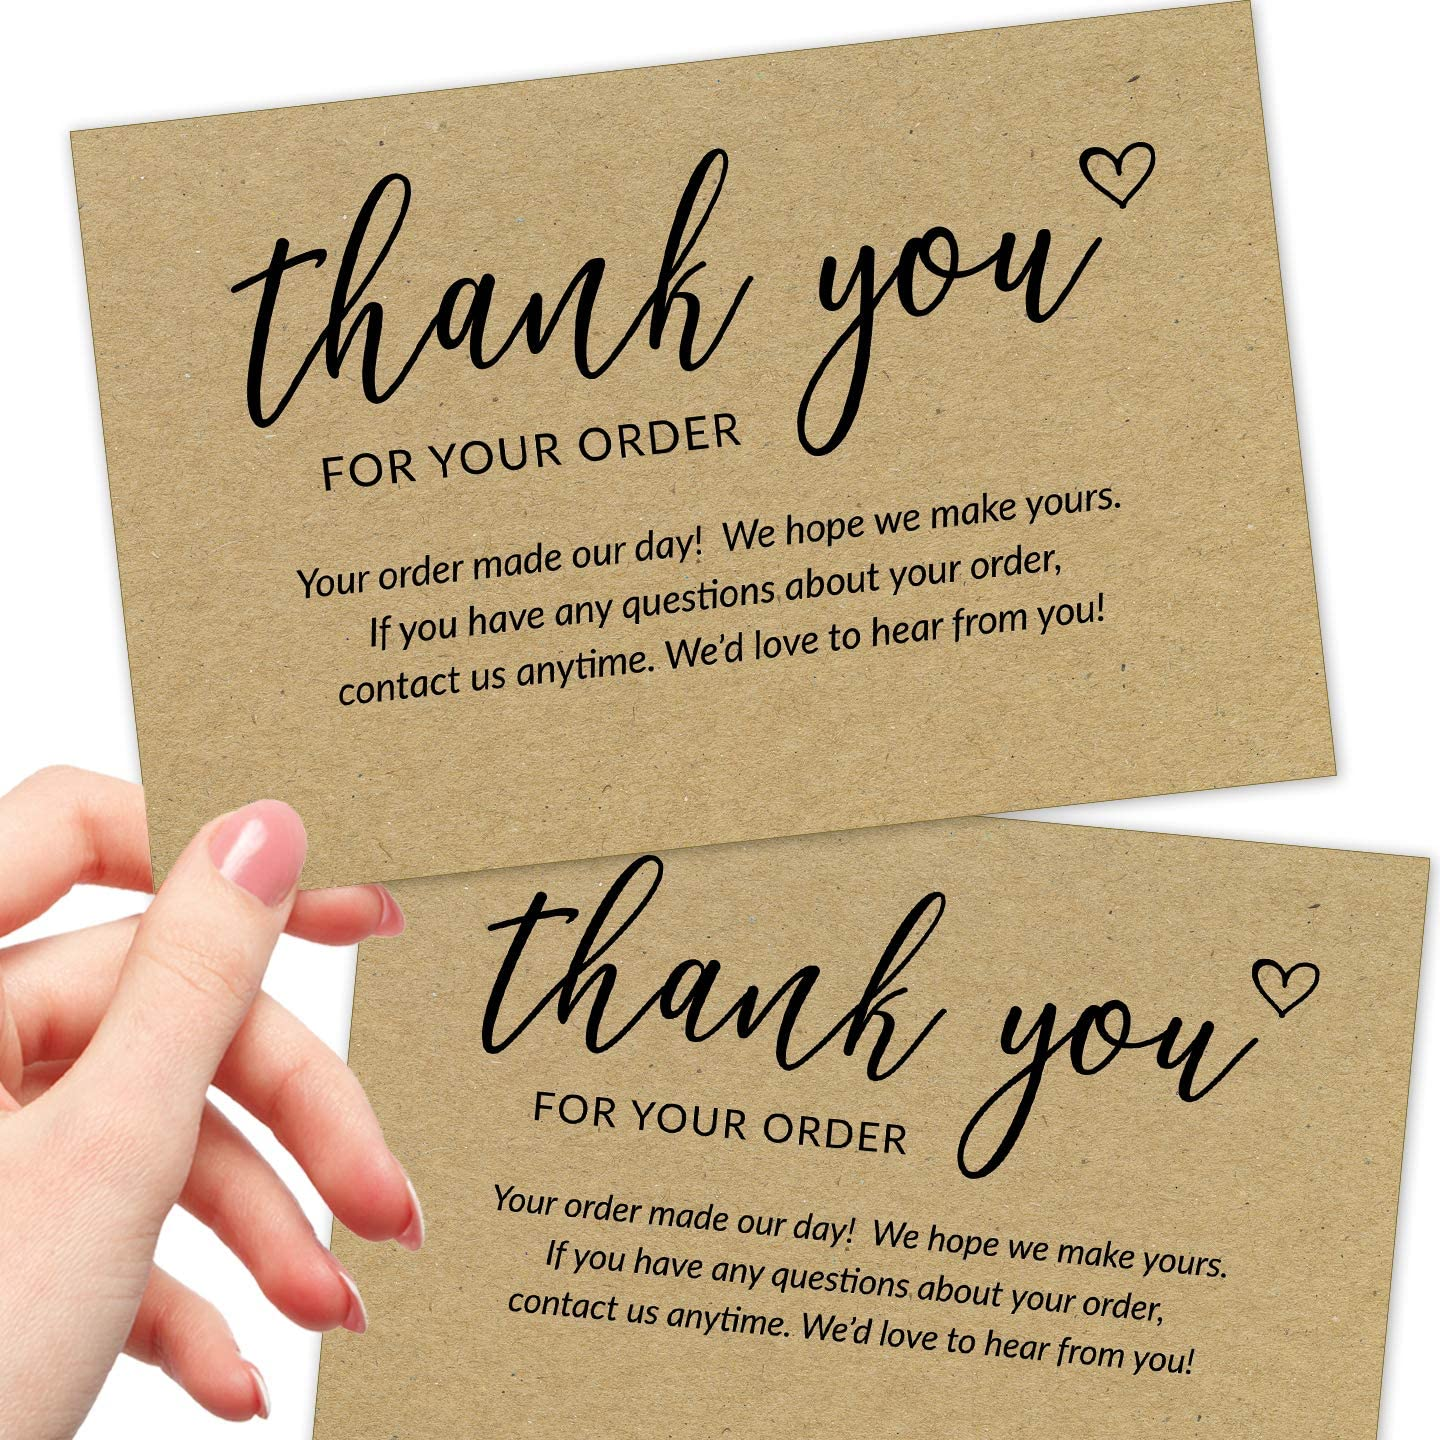 50 Large 4x6 Thank You For Your Order Cards - Bulk Kraft Postcards Purchase Inserts to Support Small Business Customer Shopping - for Online or Retail Stores, Handmade Goods and More